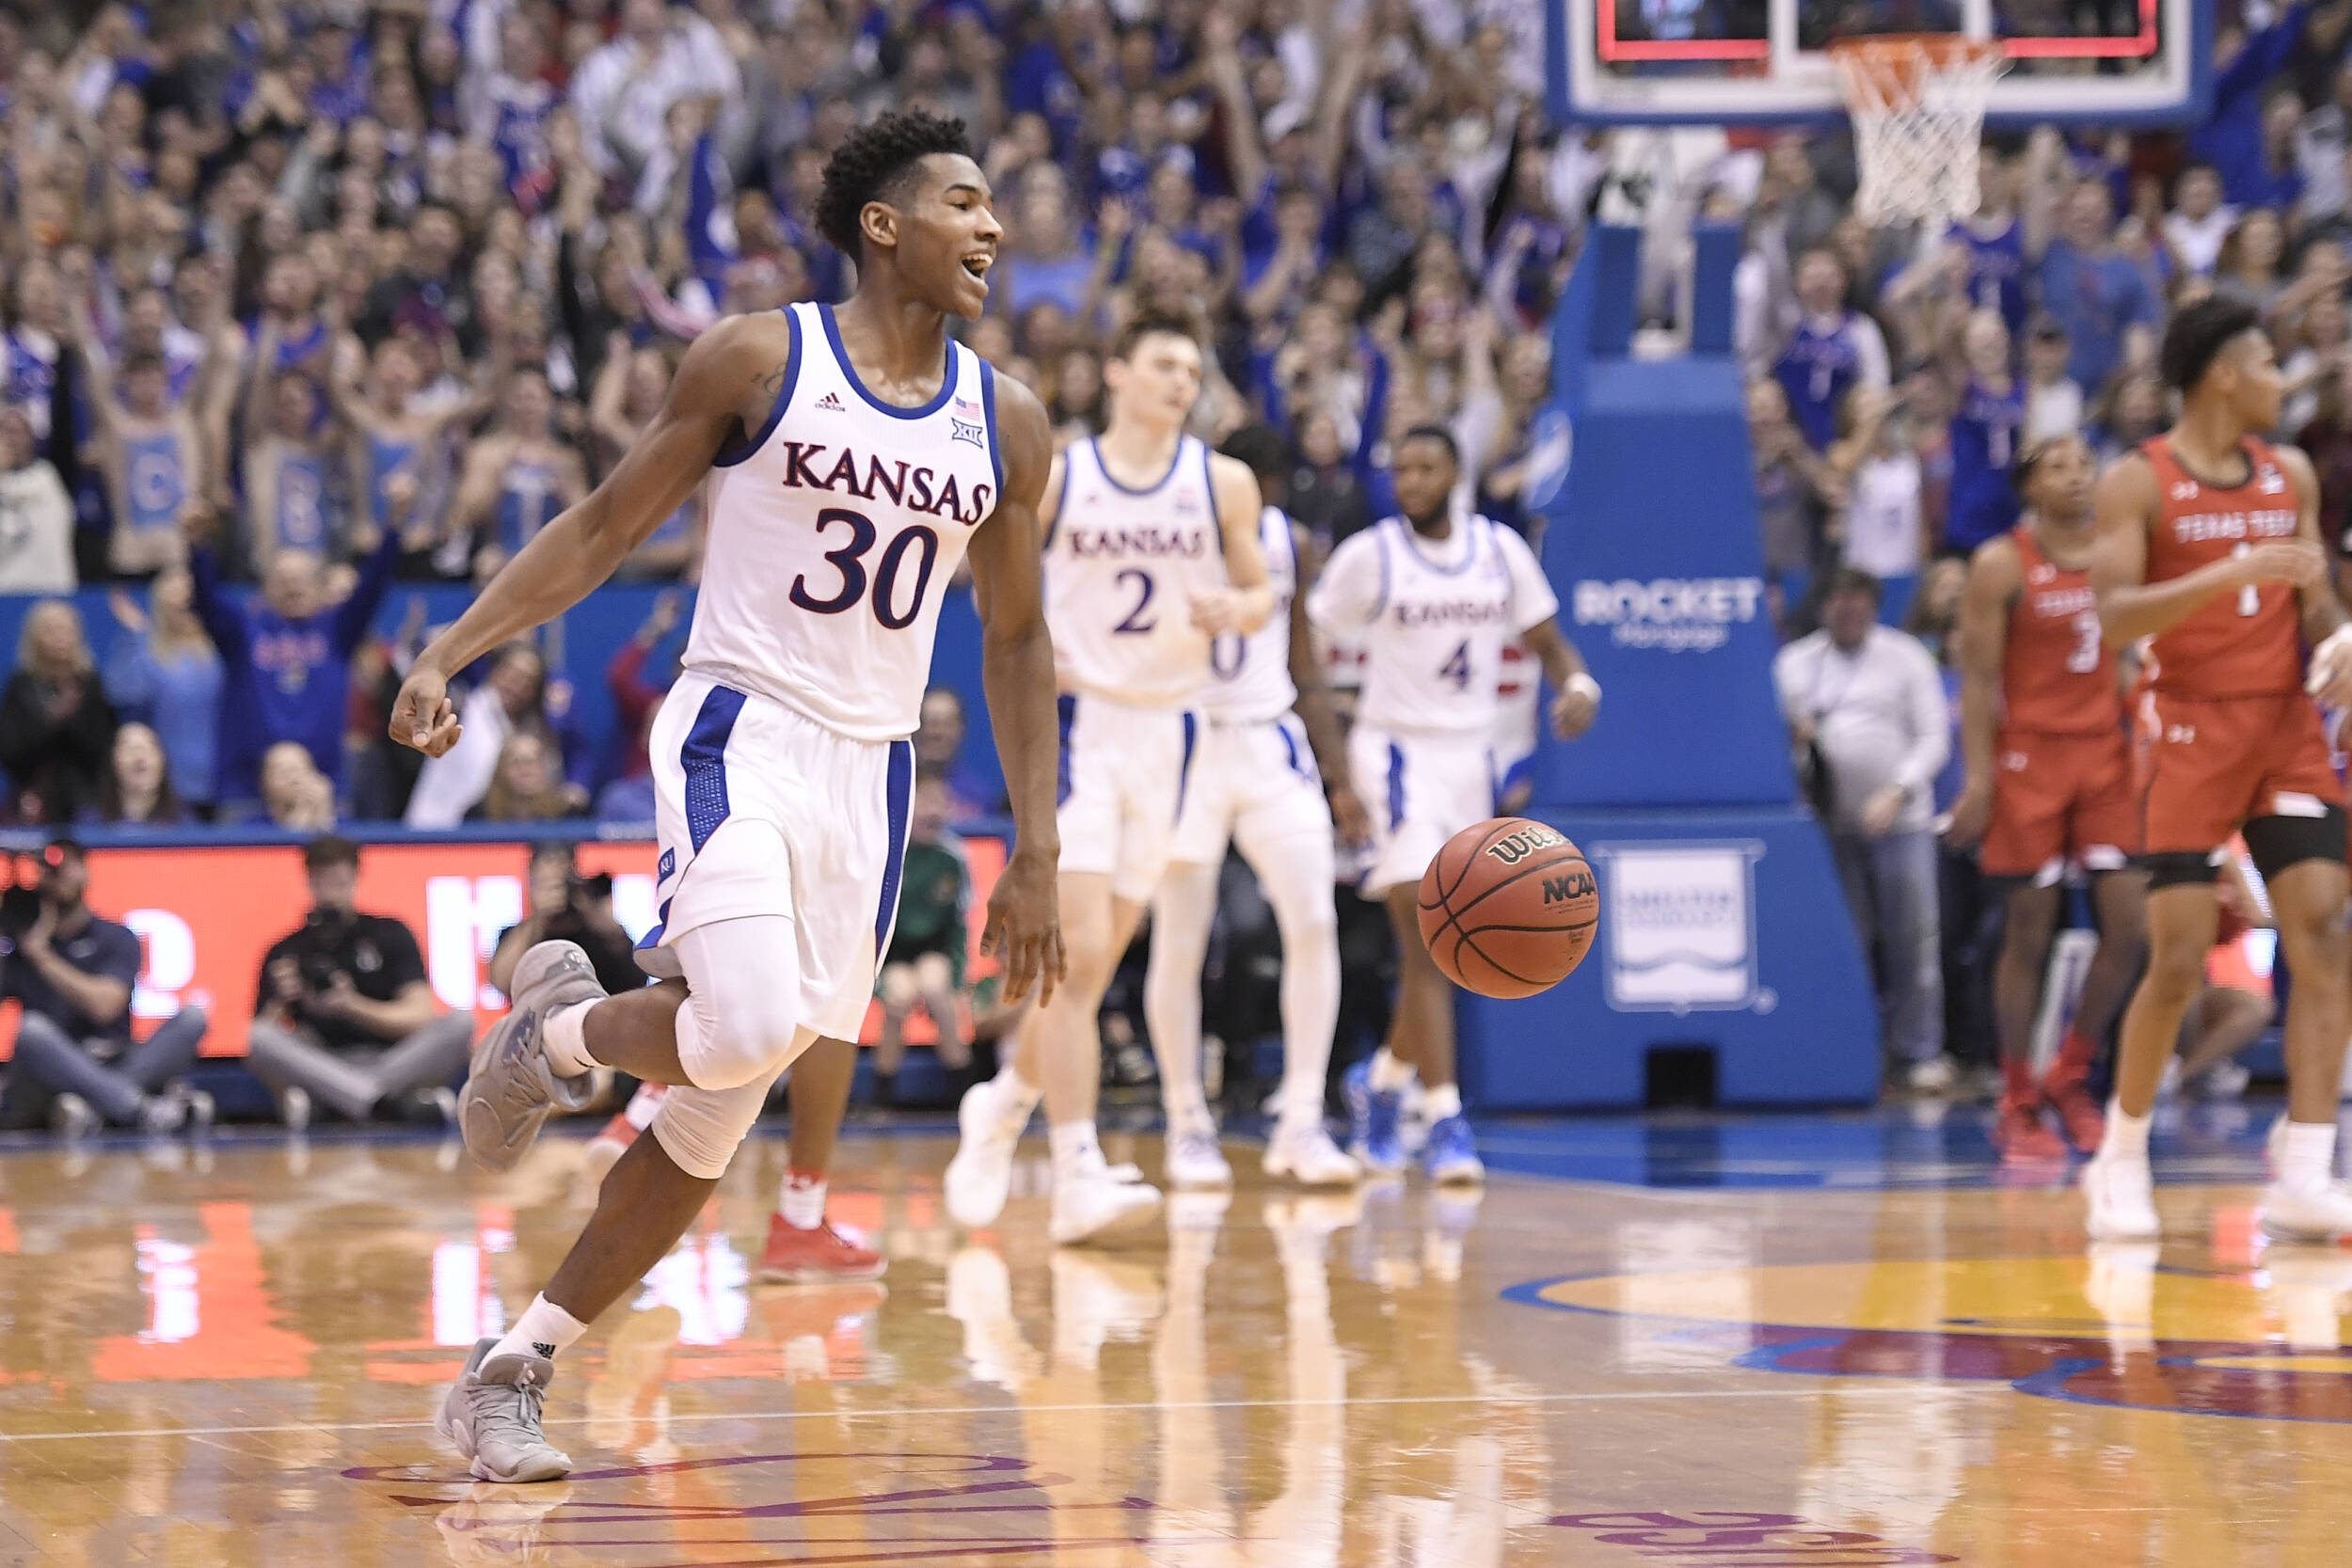 Basketball Vs Texas Tech Kansas Jayhawks